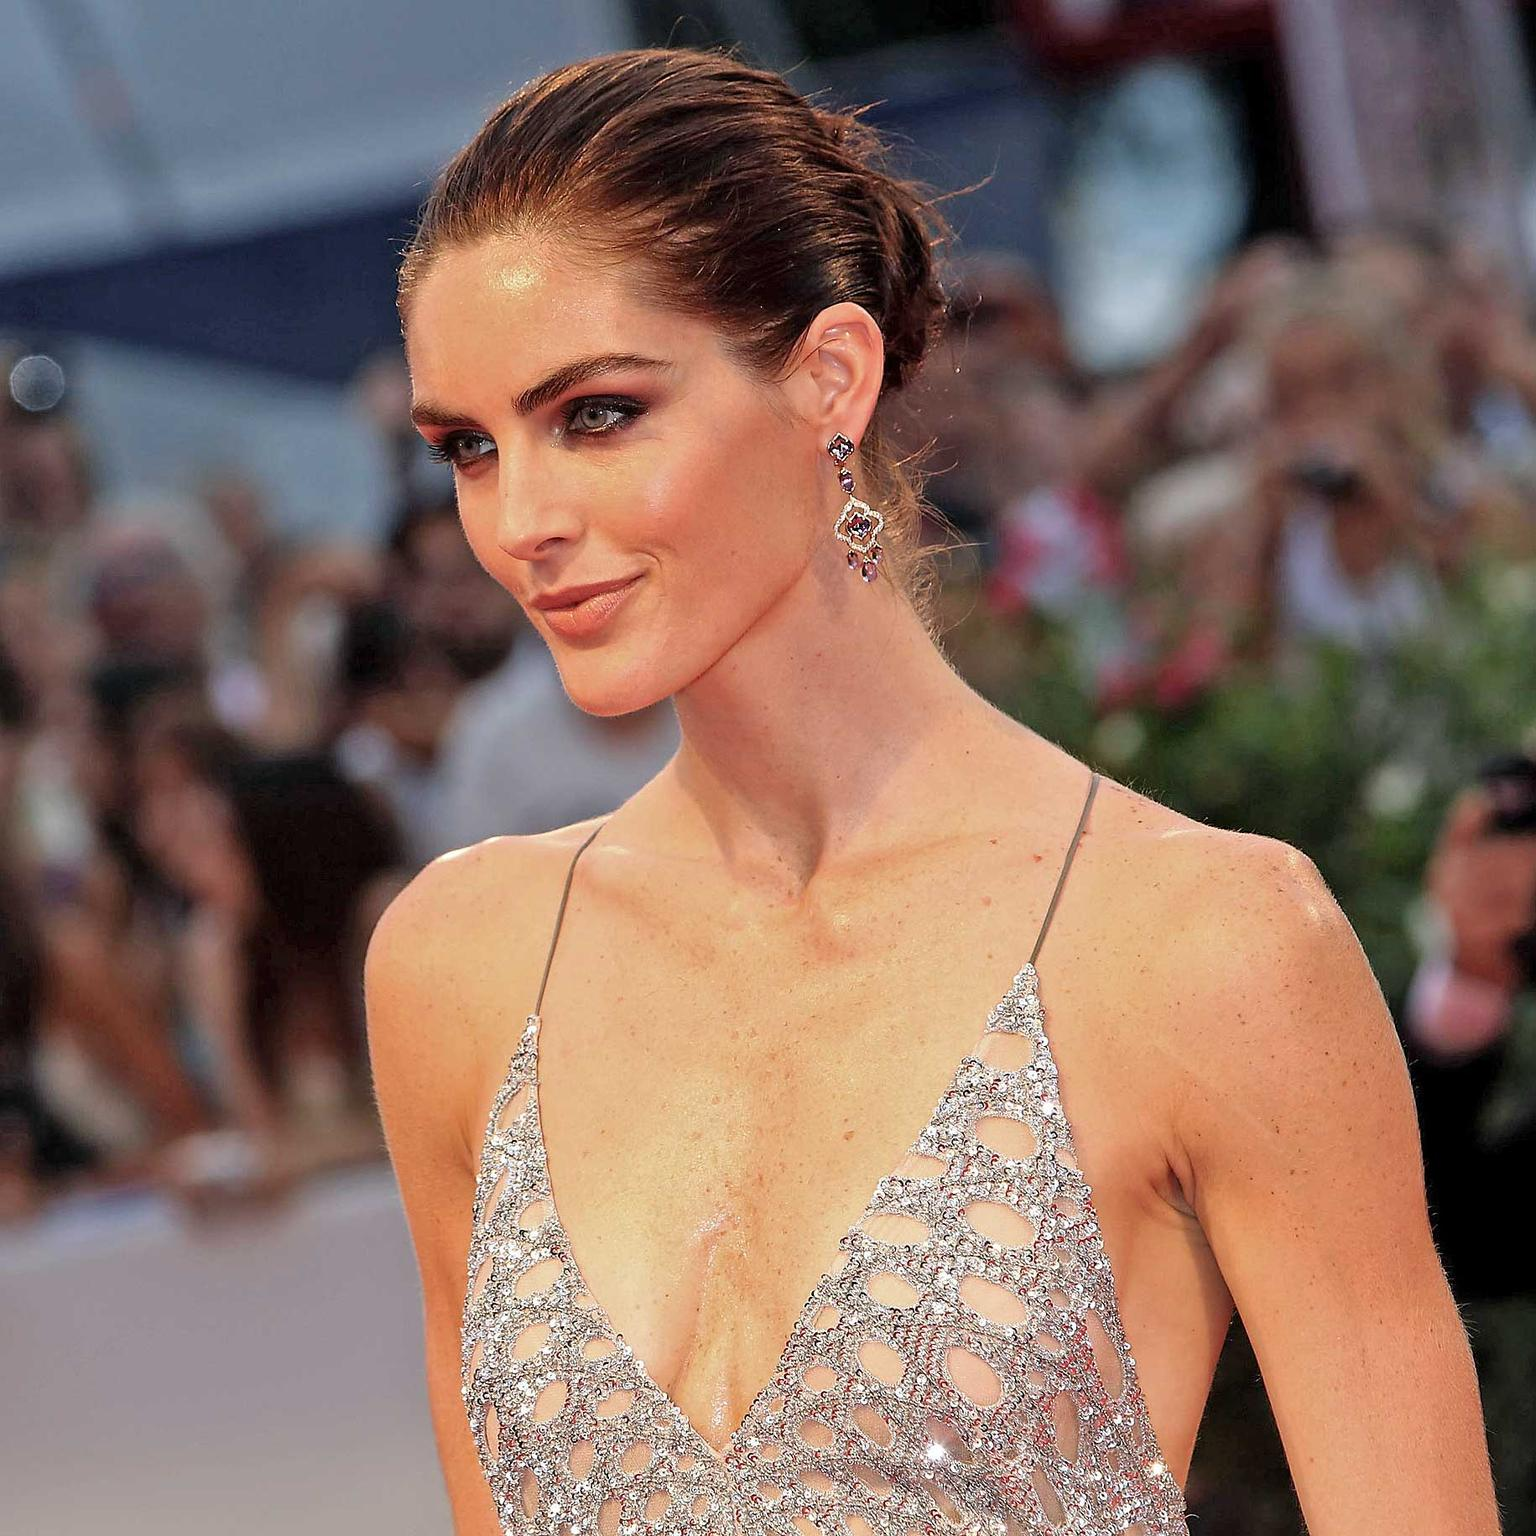 Hilary Rhoda at the Spotlight premiere wearing Chopard